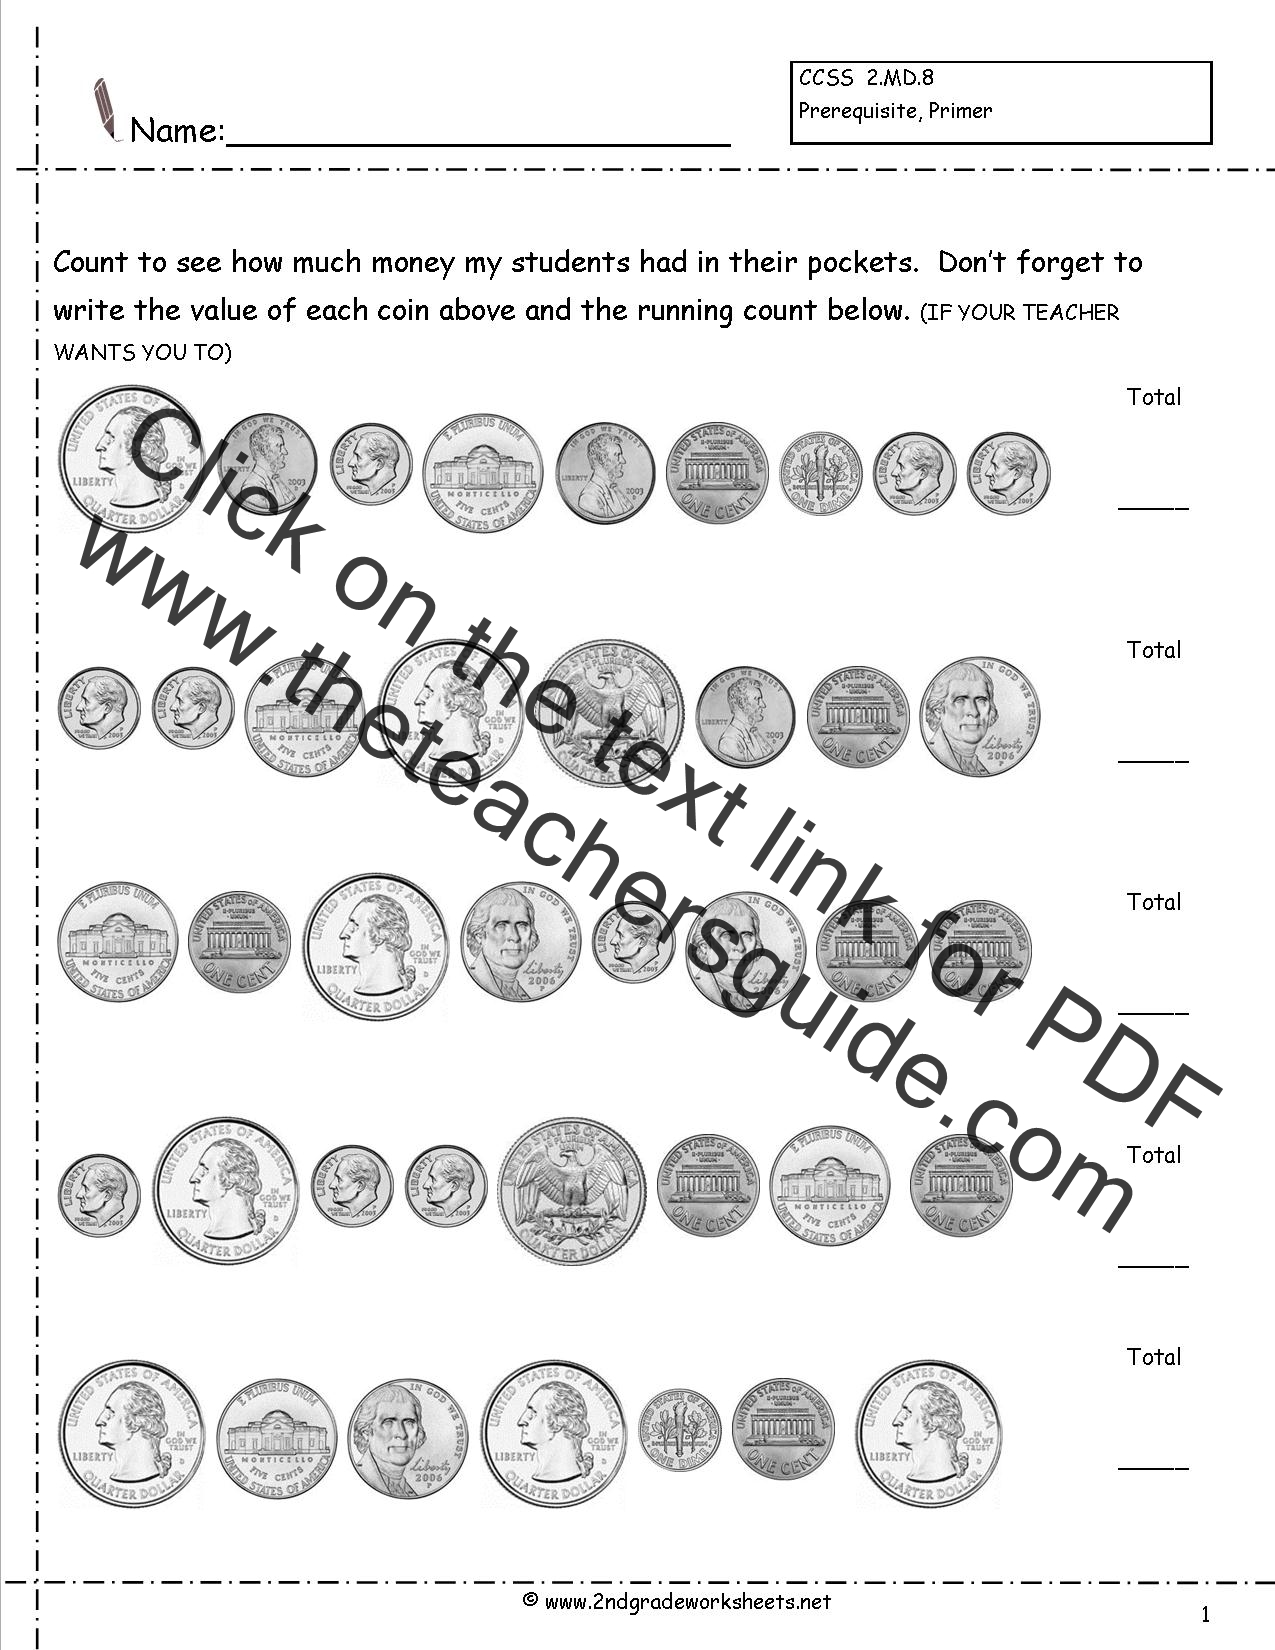 Worksheets Coin Worksheet counting coins and money worksheets printouts worksheets